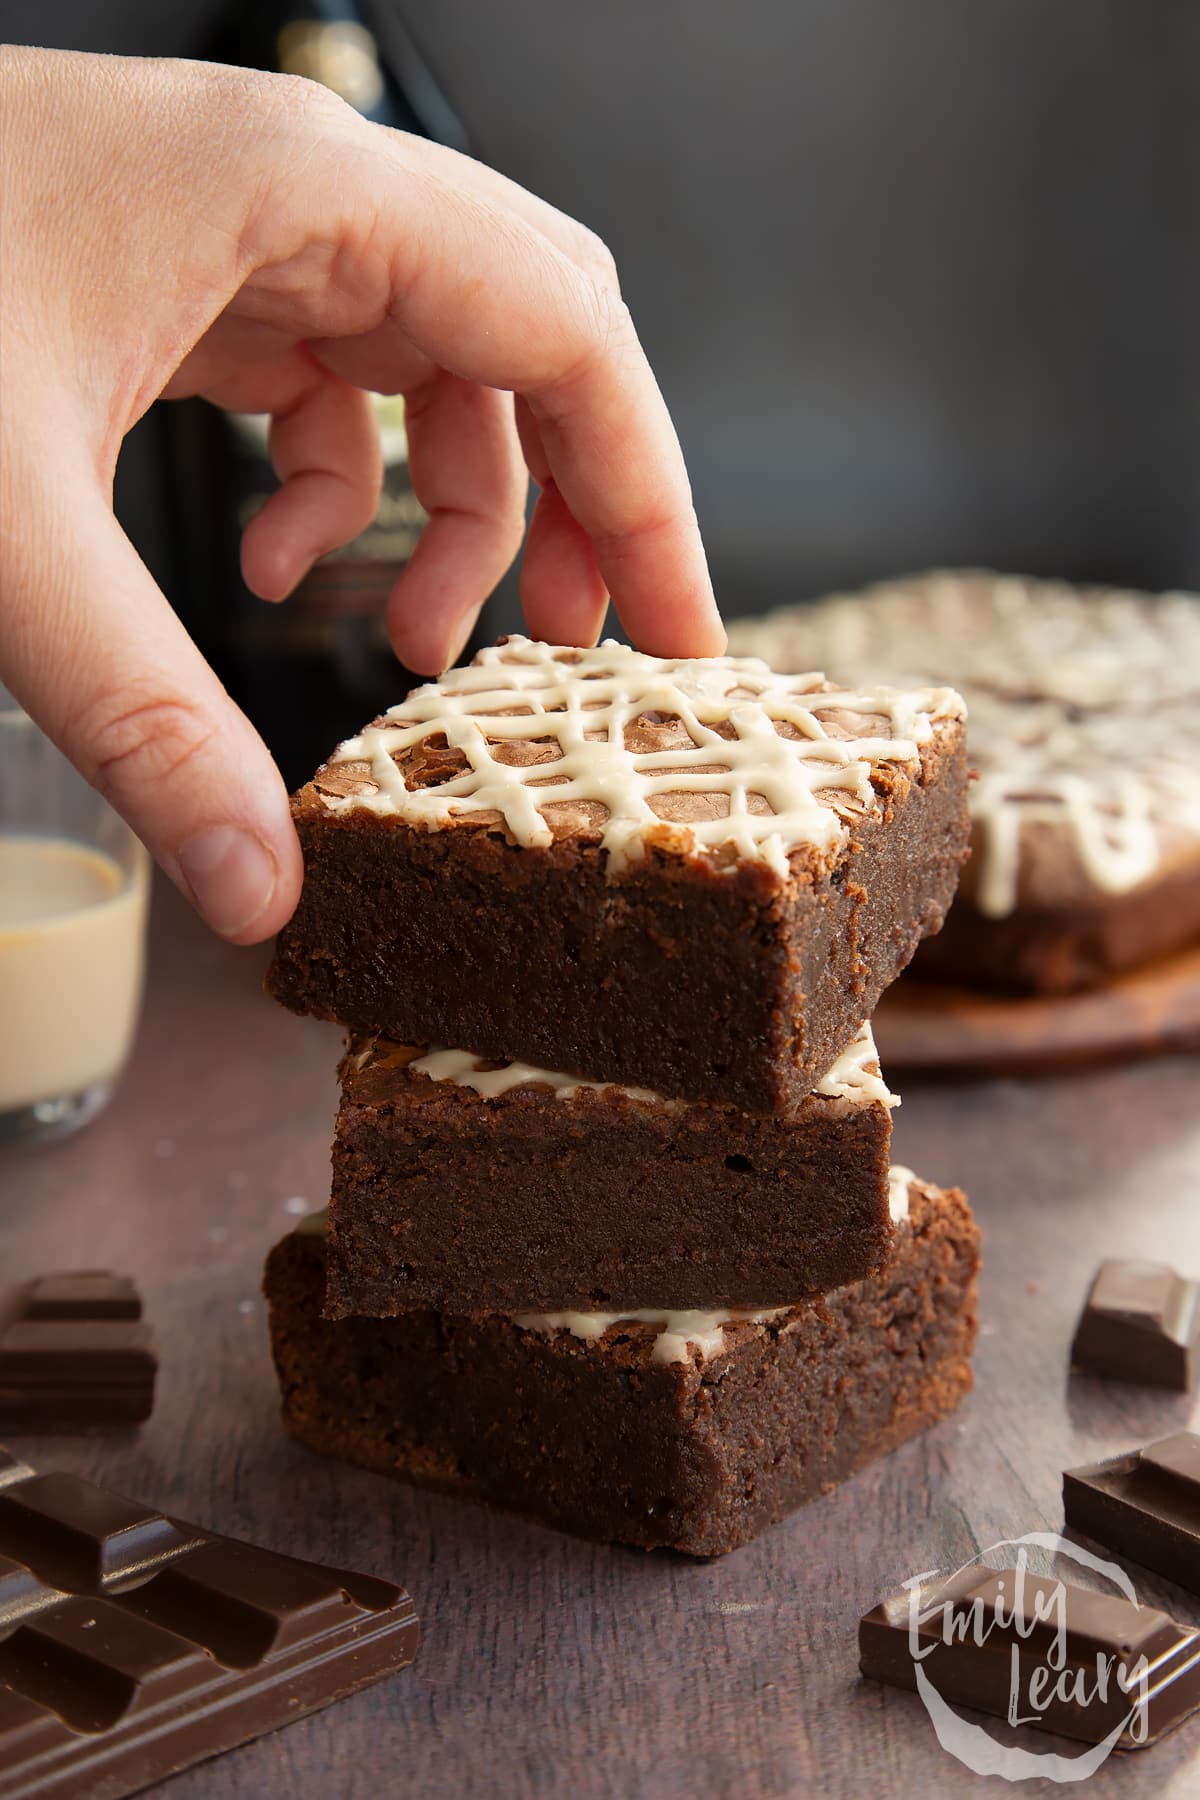 Stack of iced Baileys brownies, with more brownies and a bottle of Baileys in the background. A hand reaches for one.